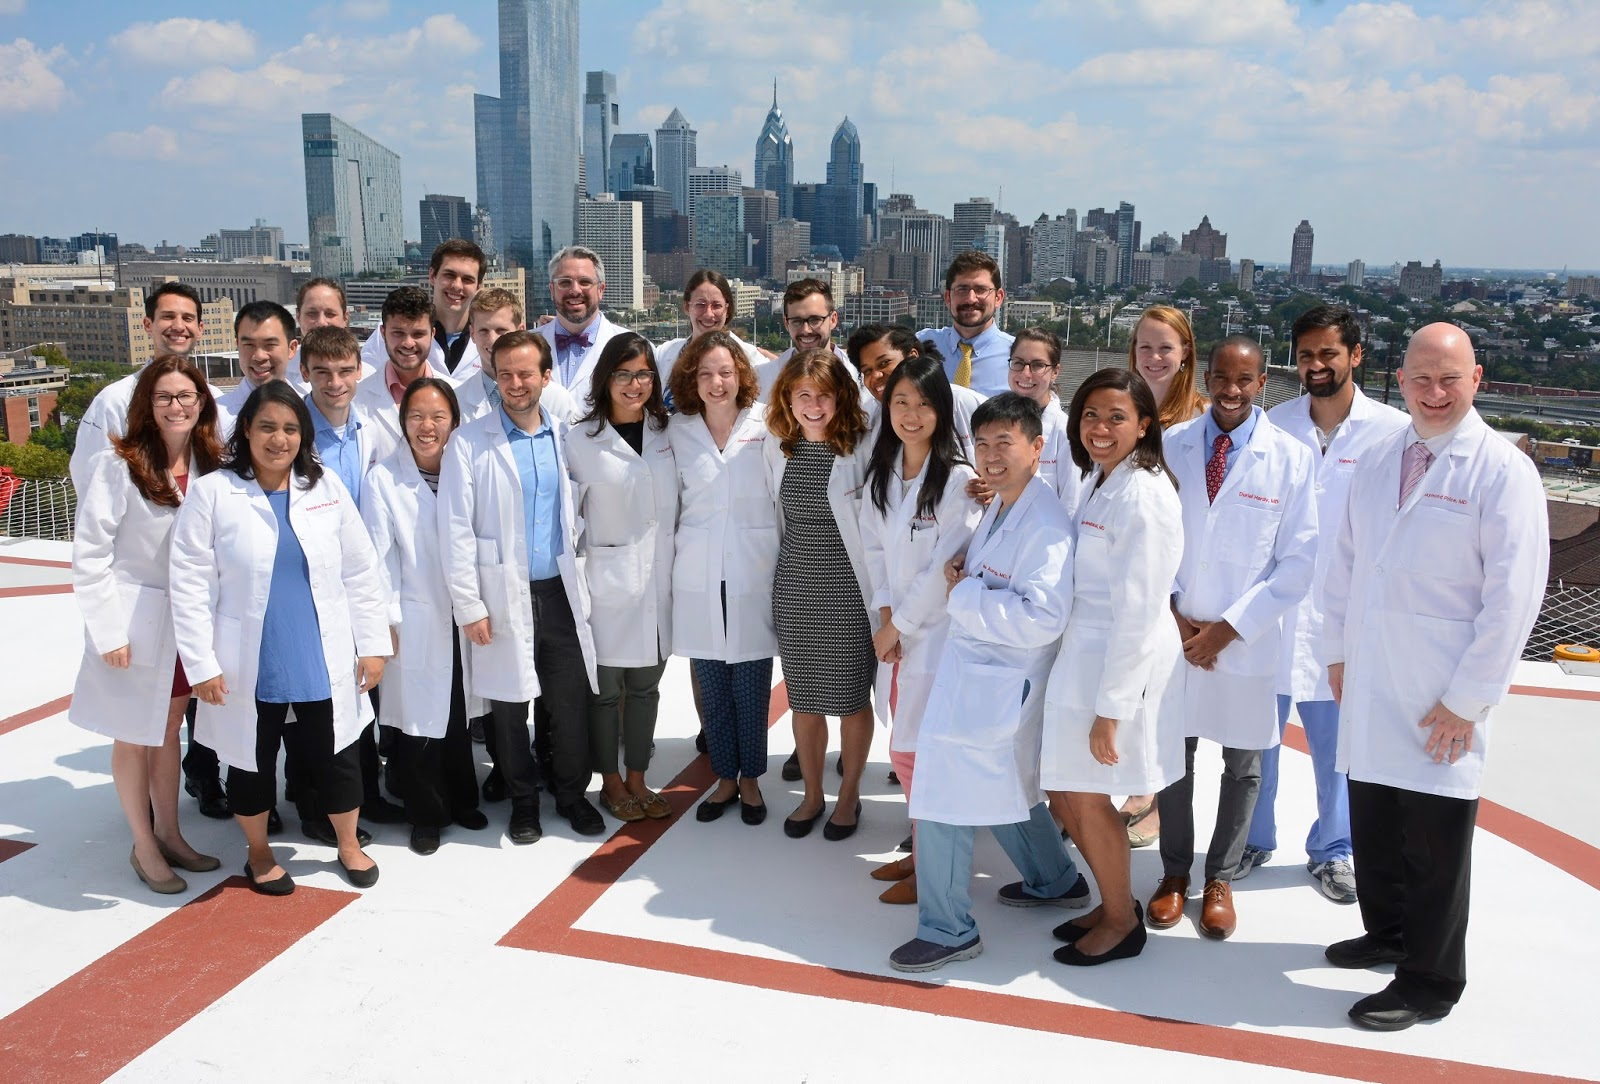 Penn Neurology Residency Program: Resident Life in Philadelphia